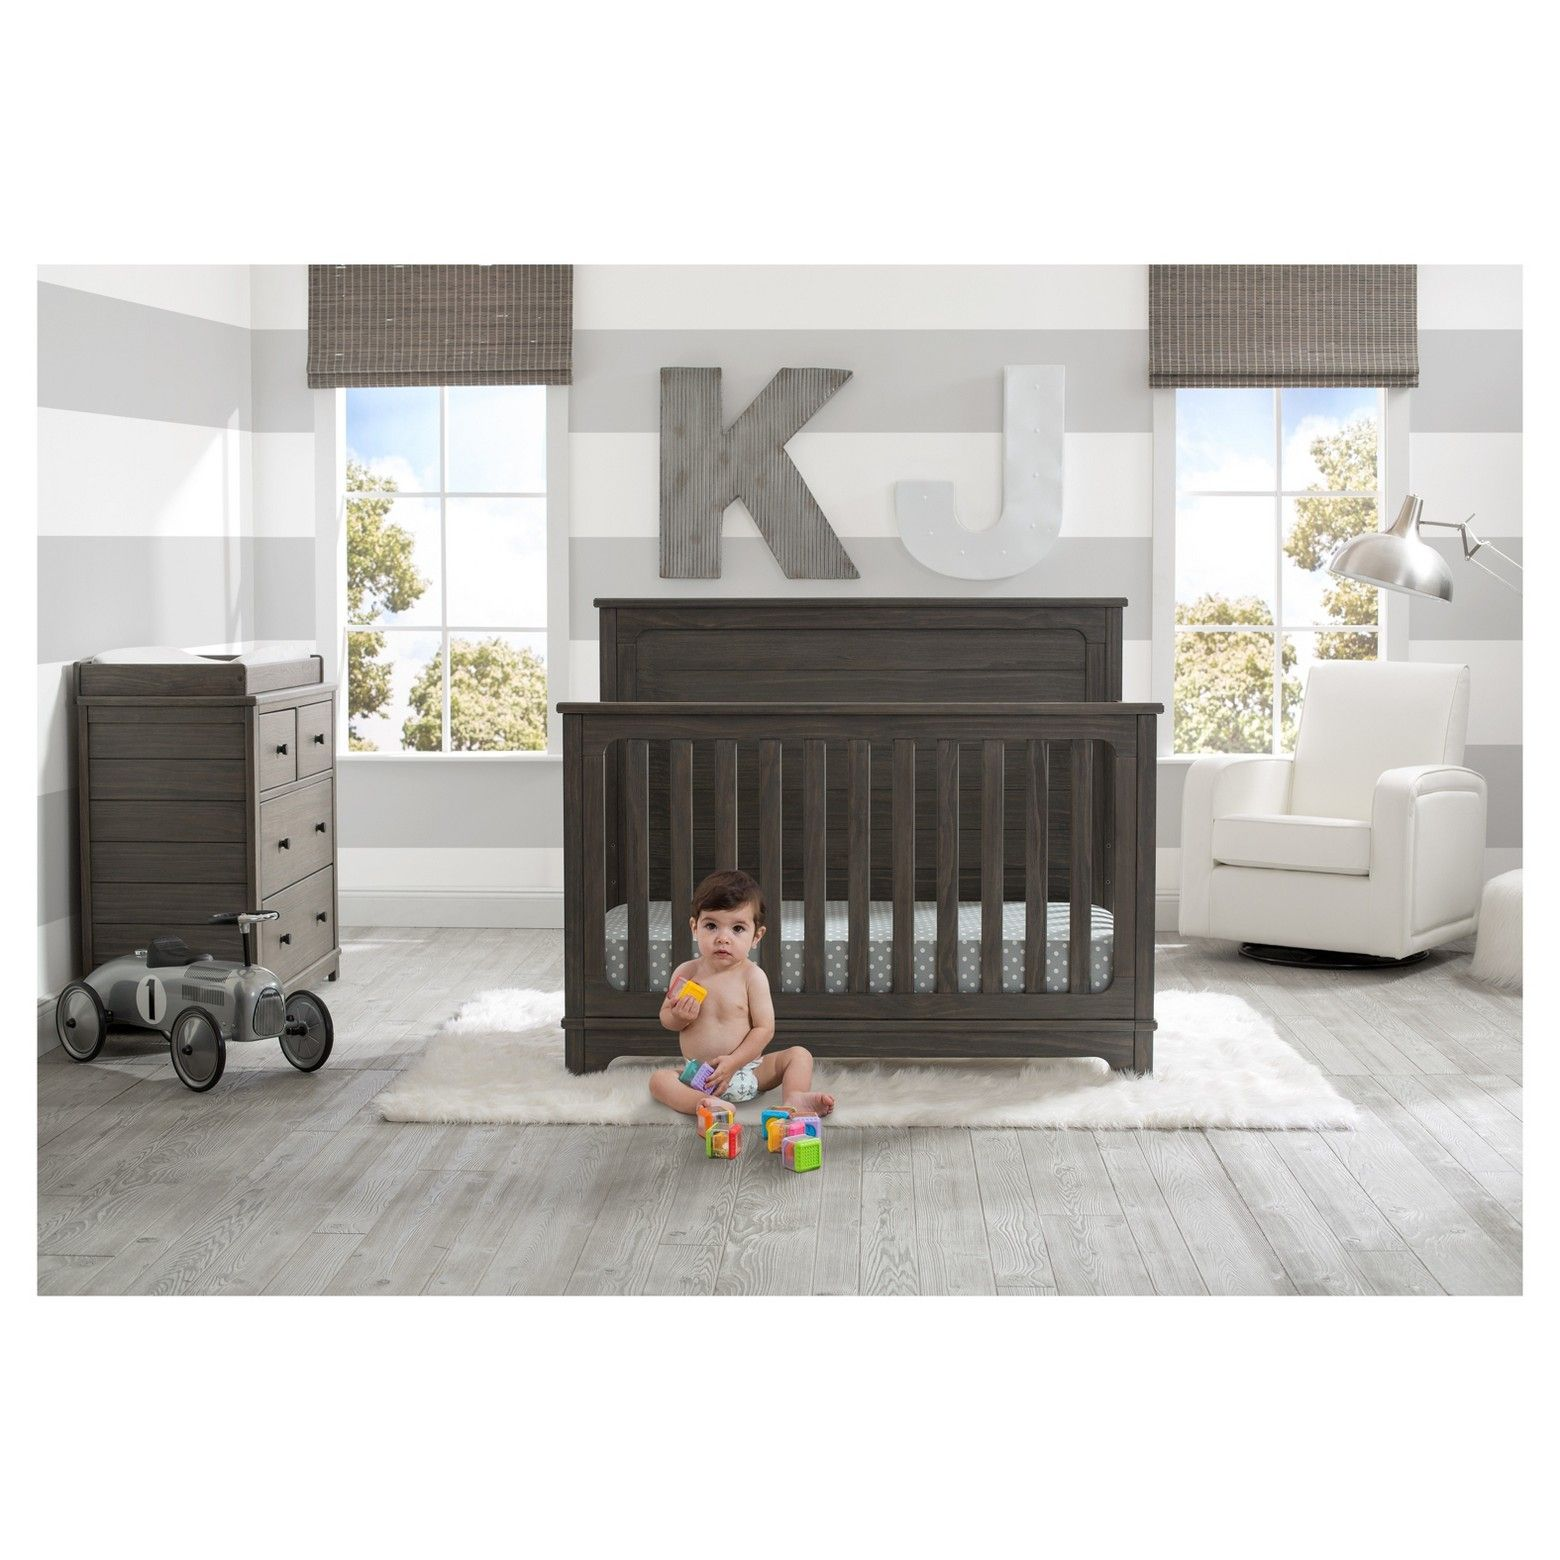 simmons nursery furniture. Equal Parts Rustic And Classic, The Monterey 4 Drawer Dresser With Changing Top From Simmons Kids Slumbertime Will Be A Standout In Any Nursery Or Furniture S